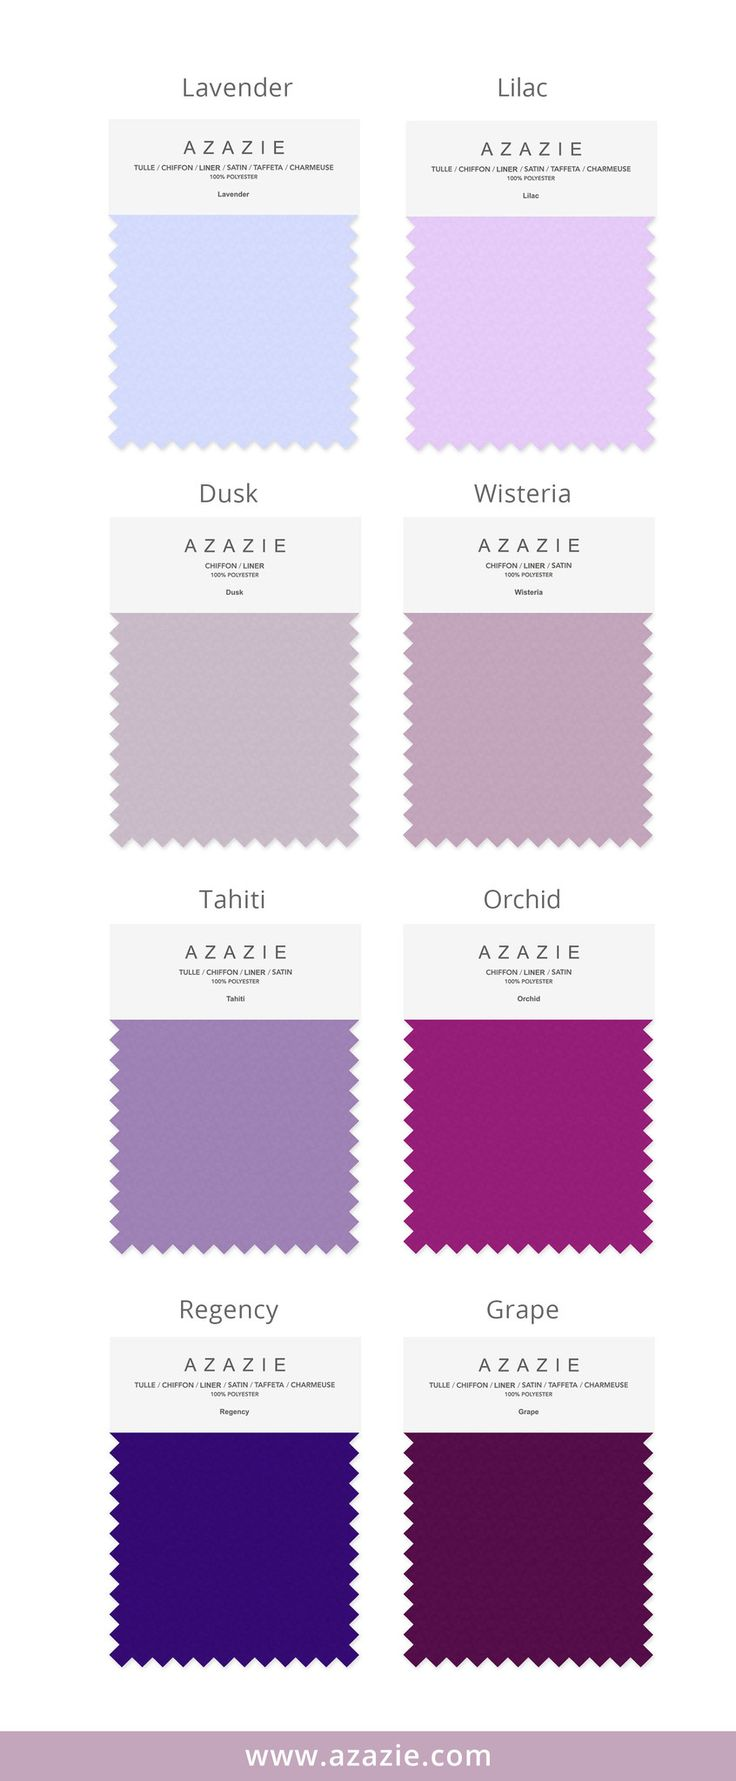 Azazie Purple Swatch Set (8 shades * 6 fabrics) - Bridesmaid dress, Wedding, Wedding gown, Lavender, Lilac, Dusk, Wisteria, Tahiti, Orchid, Regency, Grape, chiffon, mesh, lace